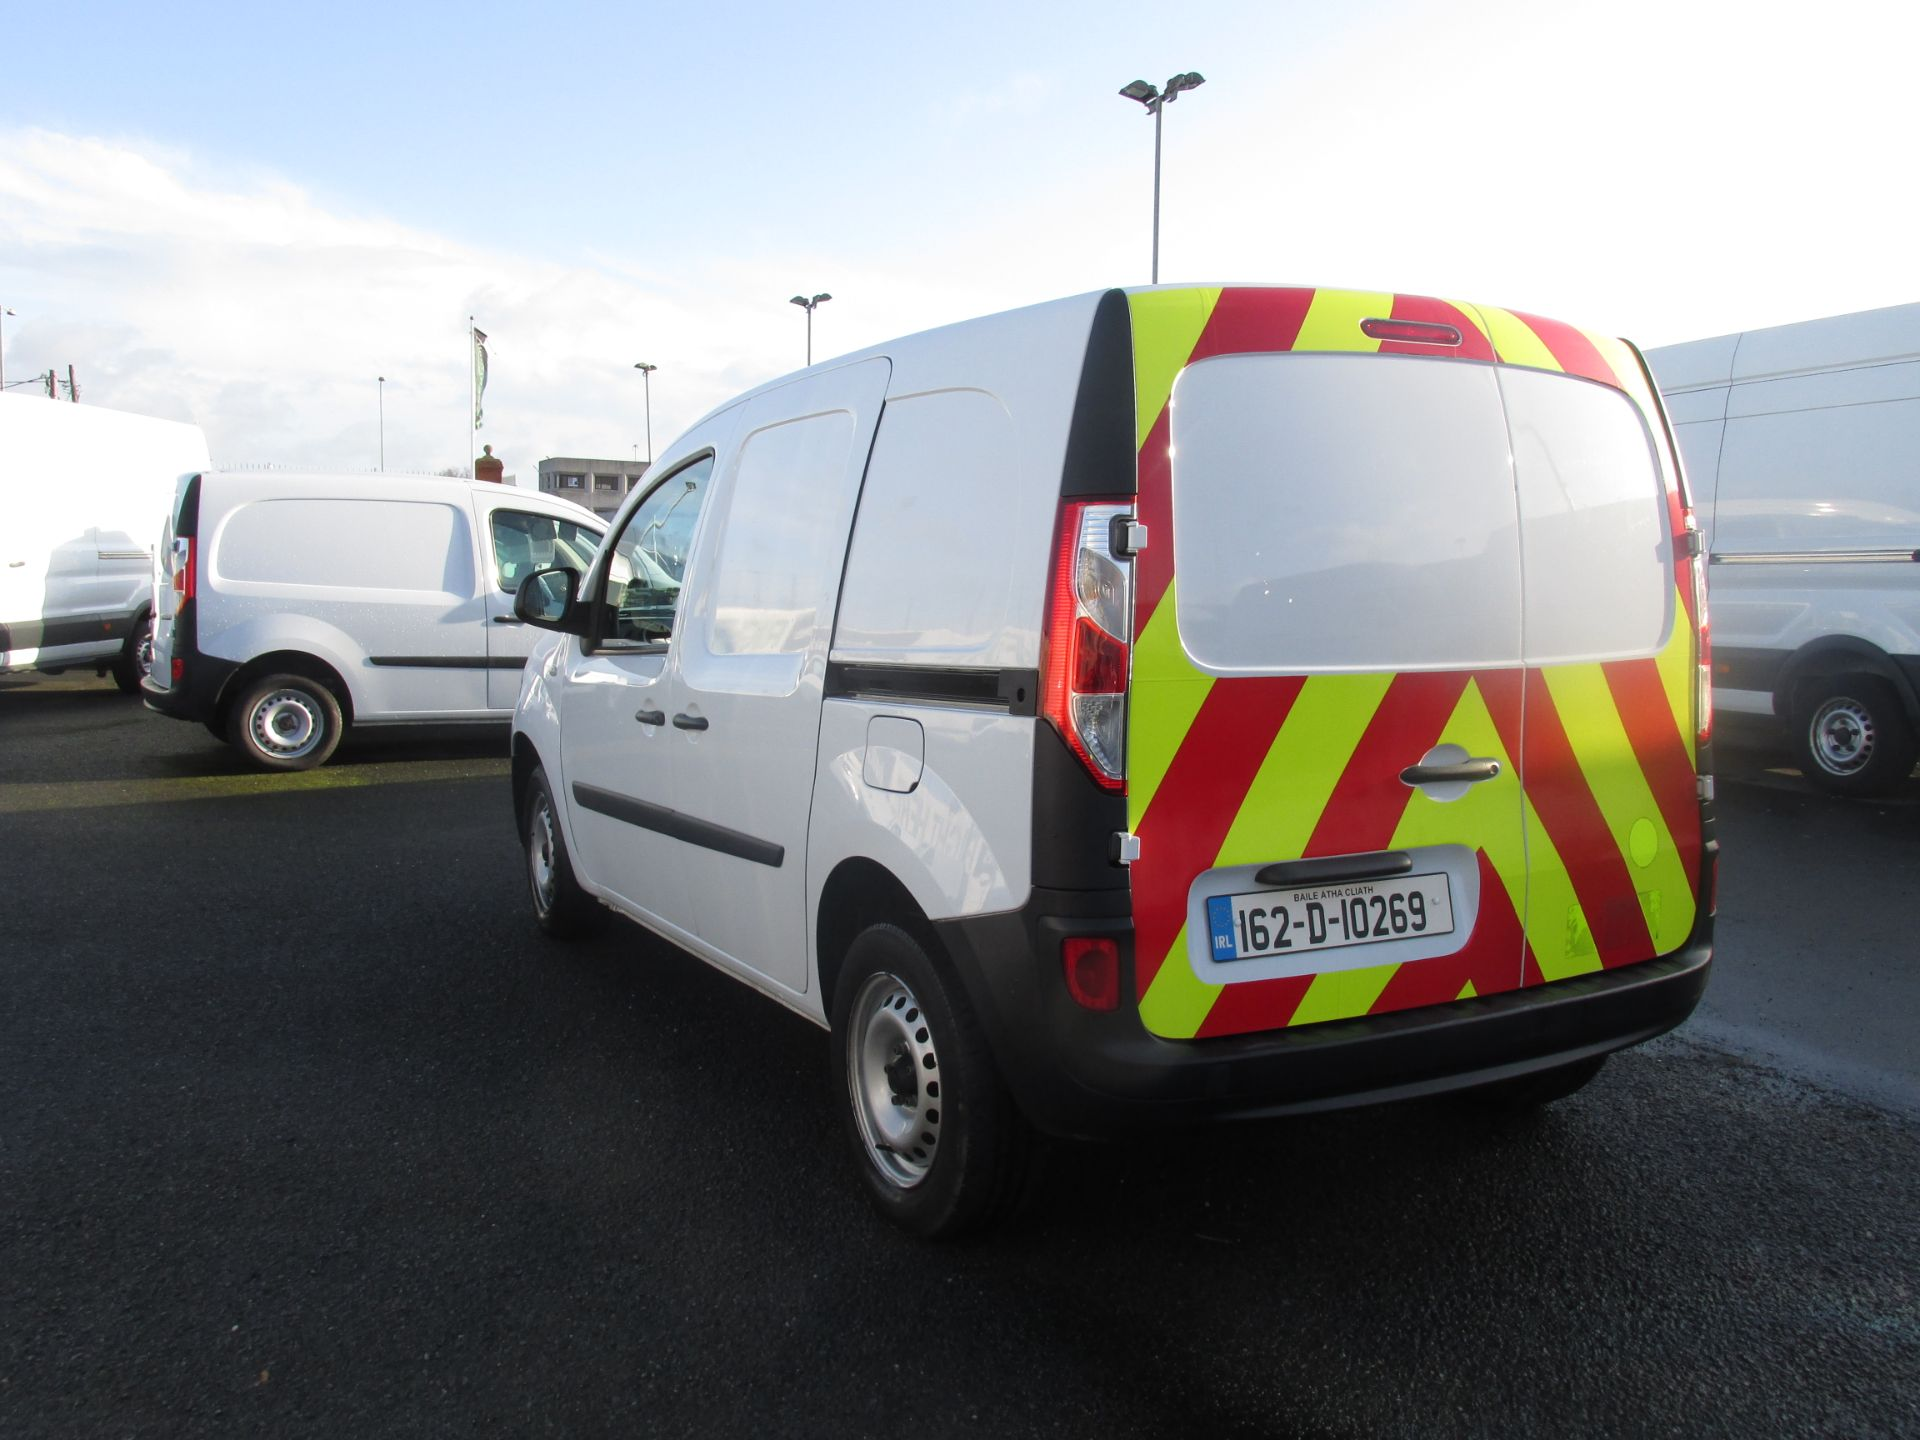 2016 Renault Kangoo 1.5 DCI 75 Business 2DR  - LOW MILES - ONE OWNER -  FSH - (162D10269) Image 5